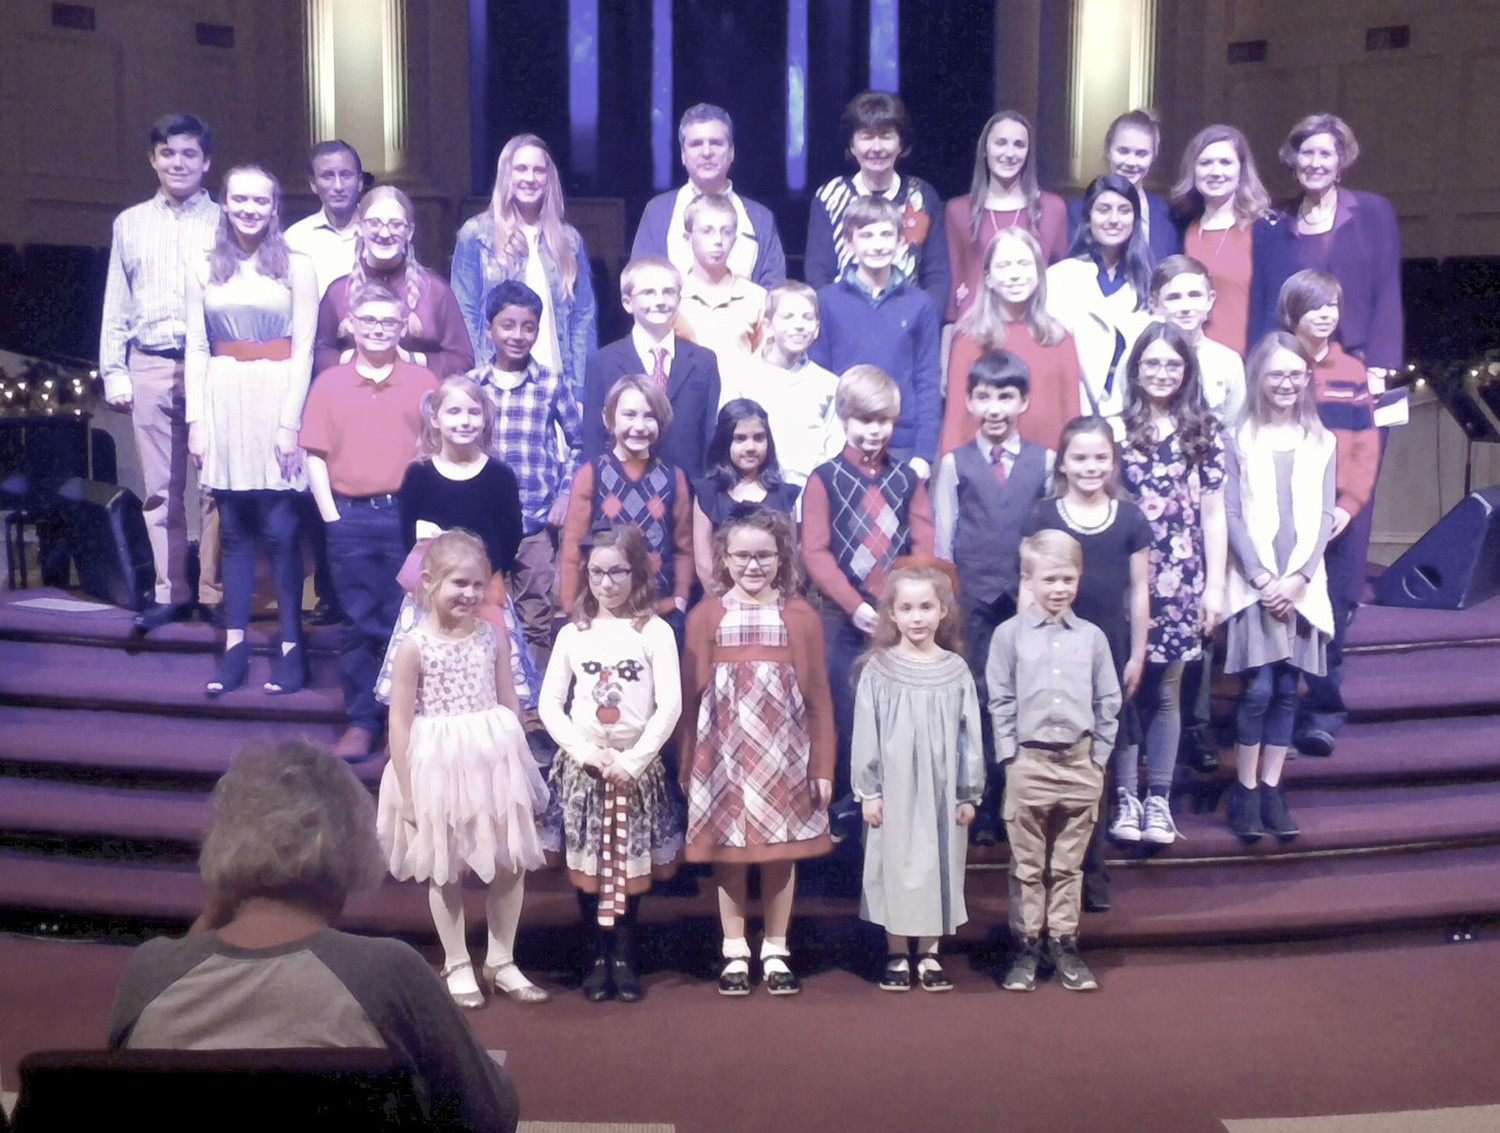 WESTMORE MUSIC Academy presented its annual Christmas recital during December at Westmore Church of God.